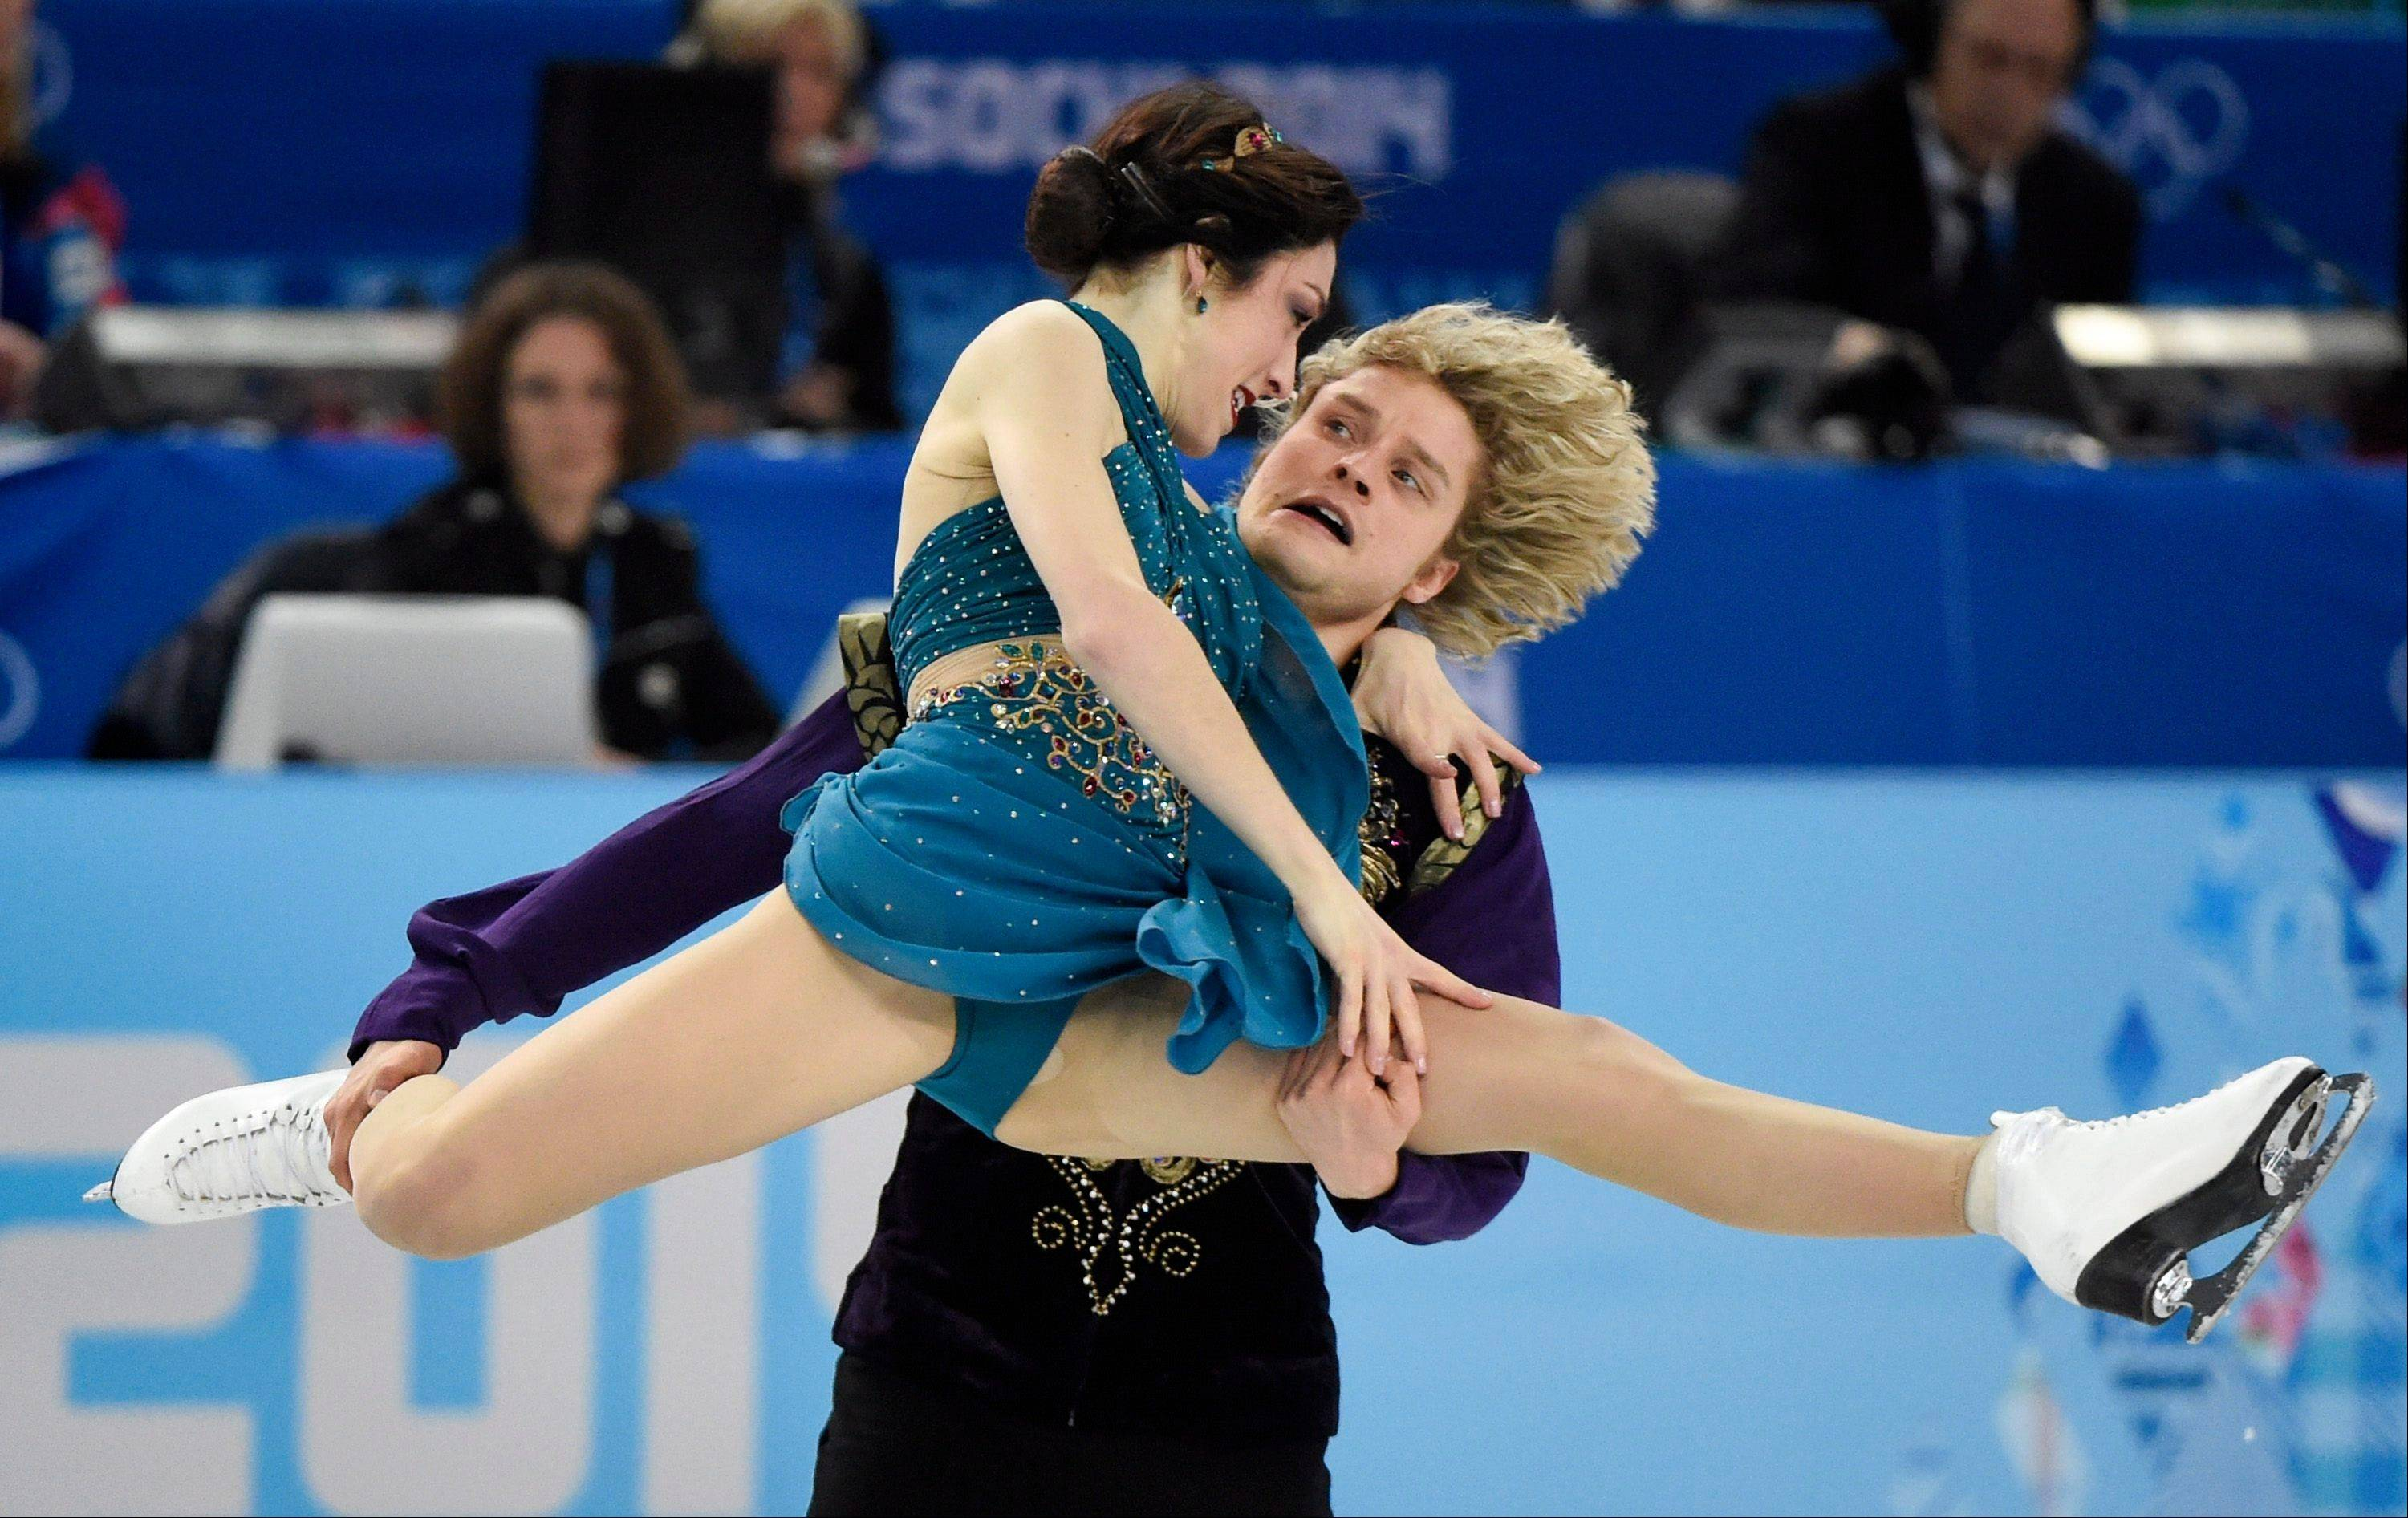 Meryl Davis and Charlie White, of the United States, perform their free dance in the ice dance portion of the team figure skating event at the Winter Olympics, Sunday, Feb. 9, 2014, in Sochi, Russia.